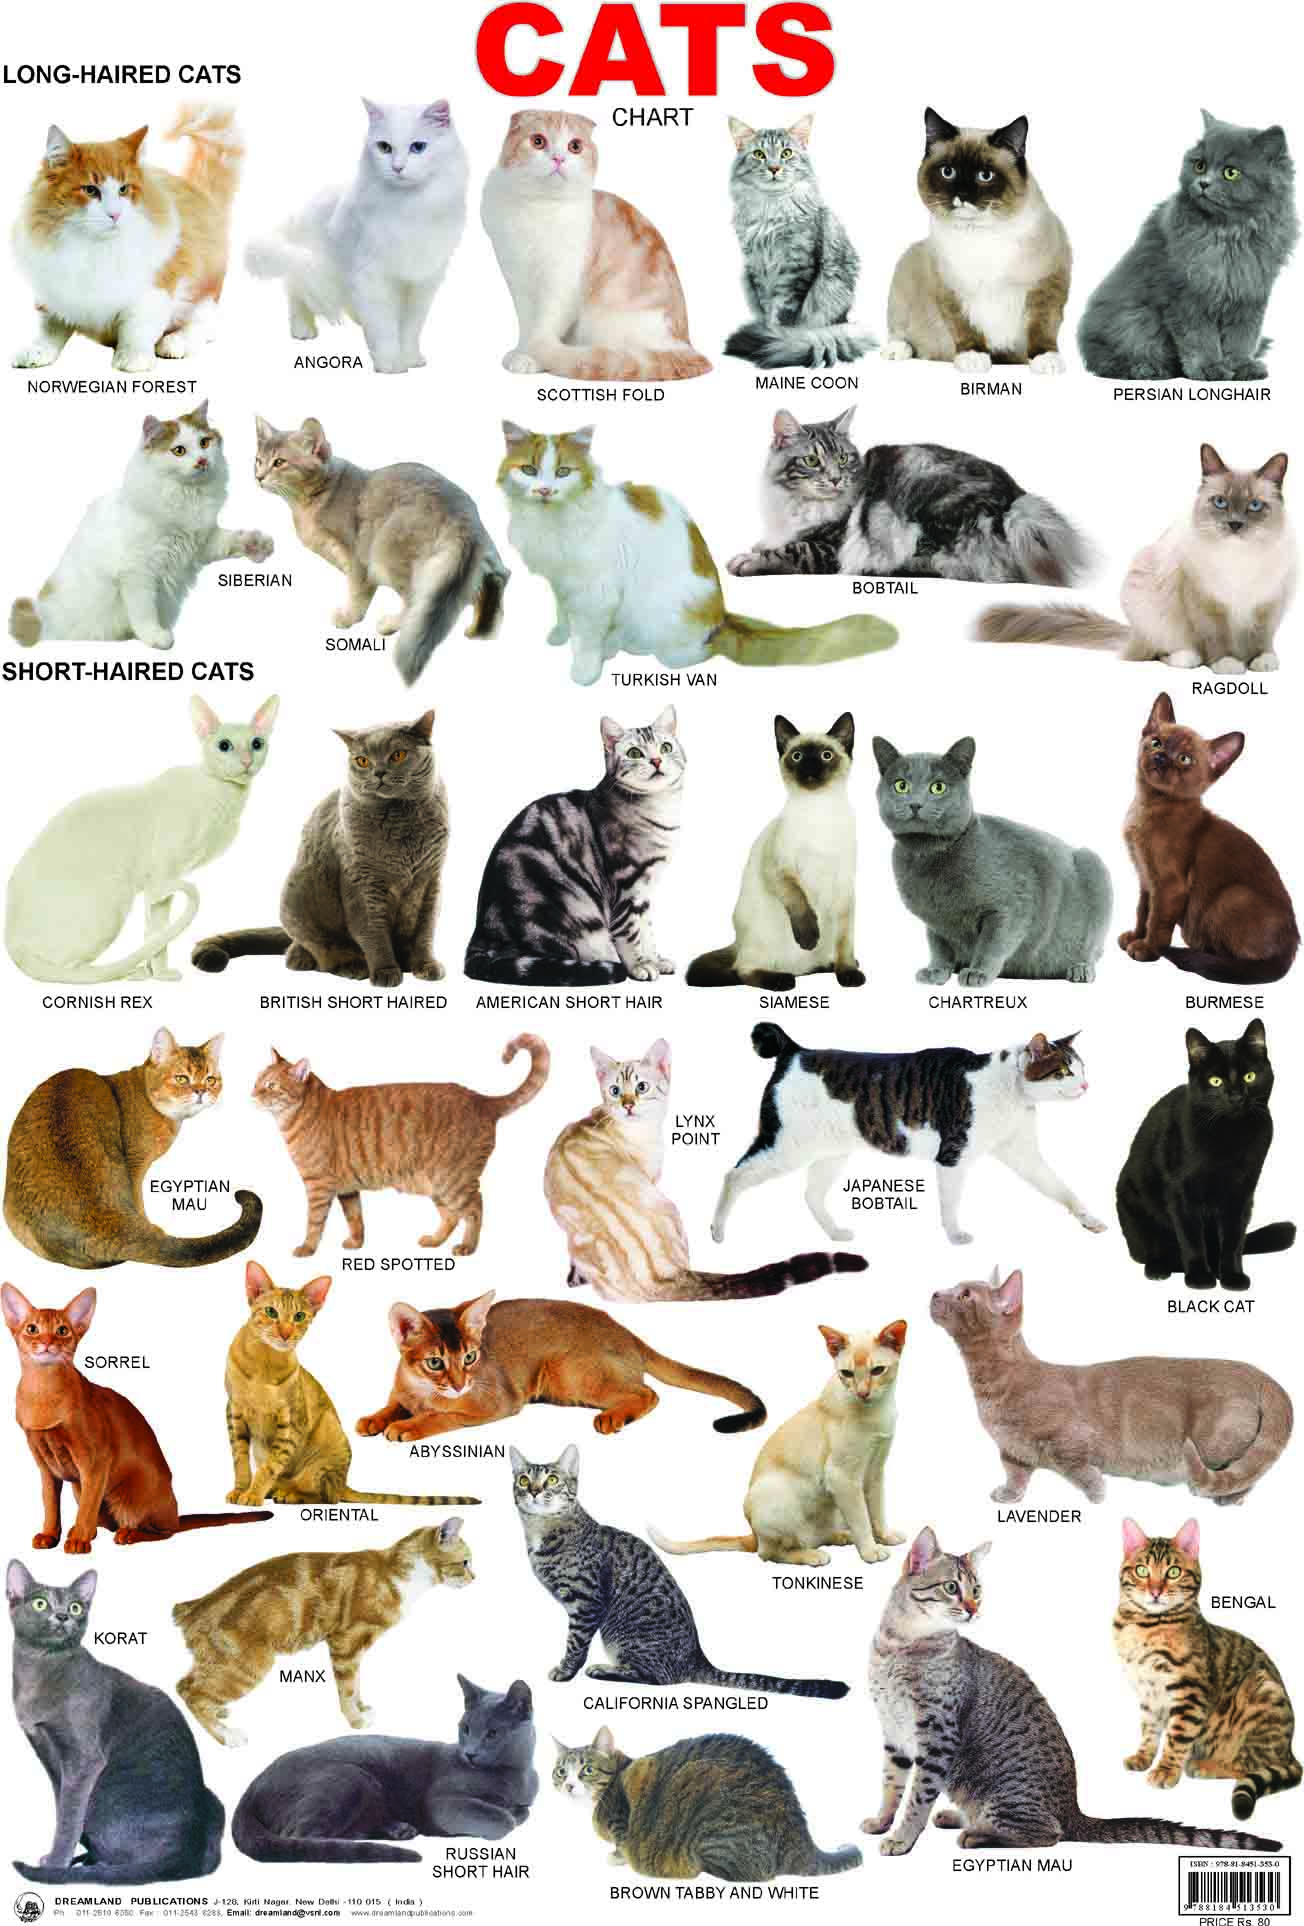 Cat breeds information characteristics and behavior Dogalize